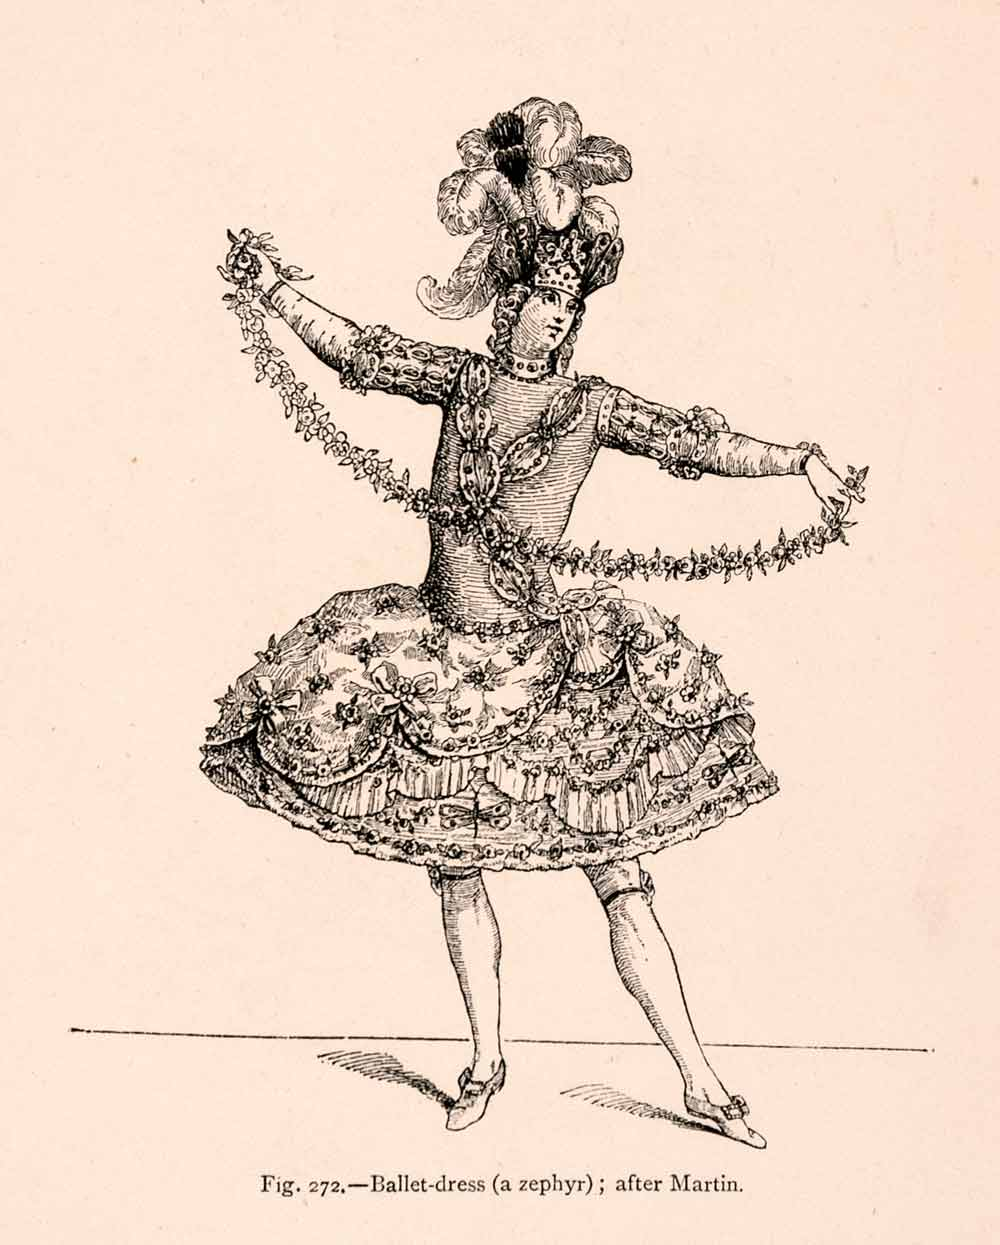 1876 Wood Engraving Ballet Dress Zephyr Martin Costume 18th Century France XGGA9